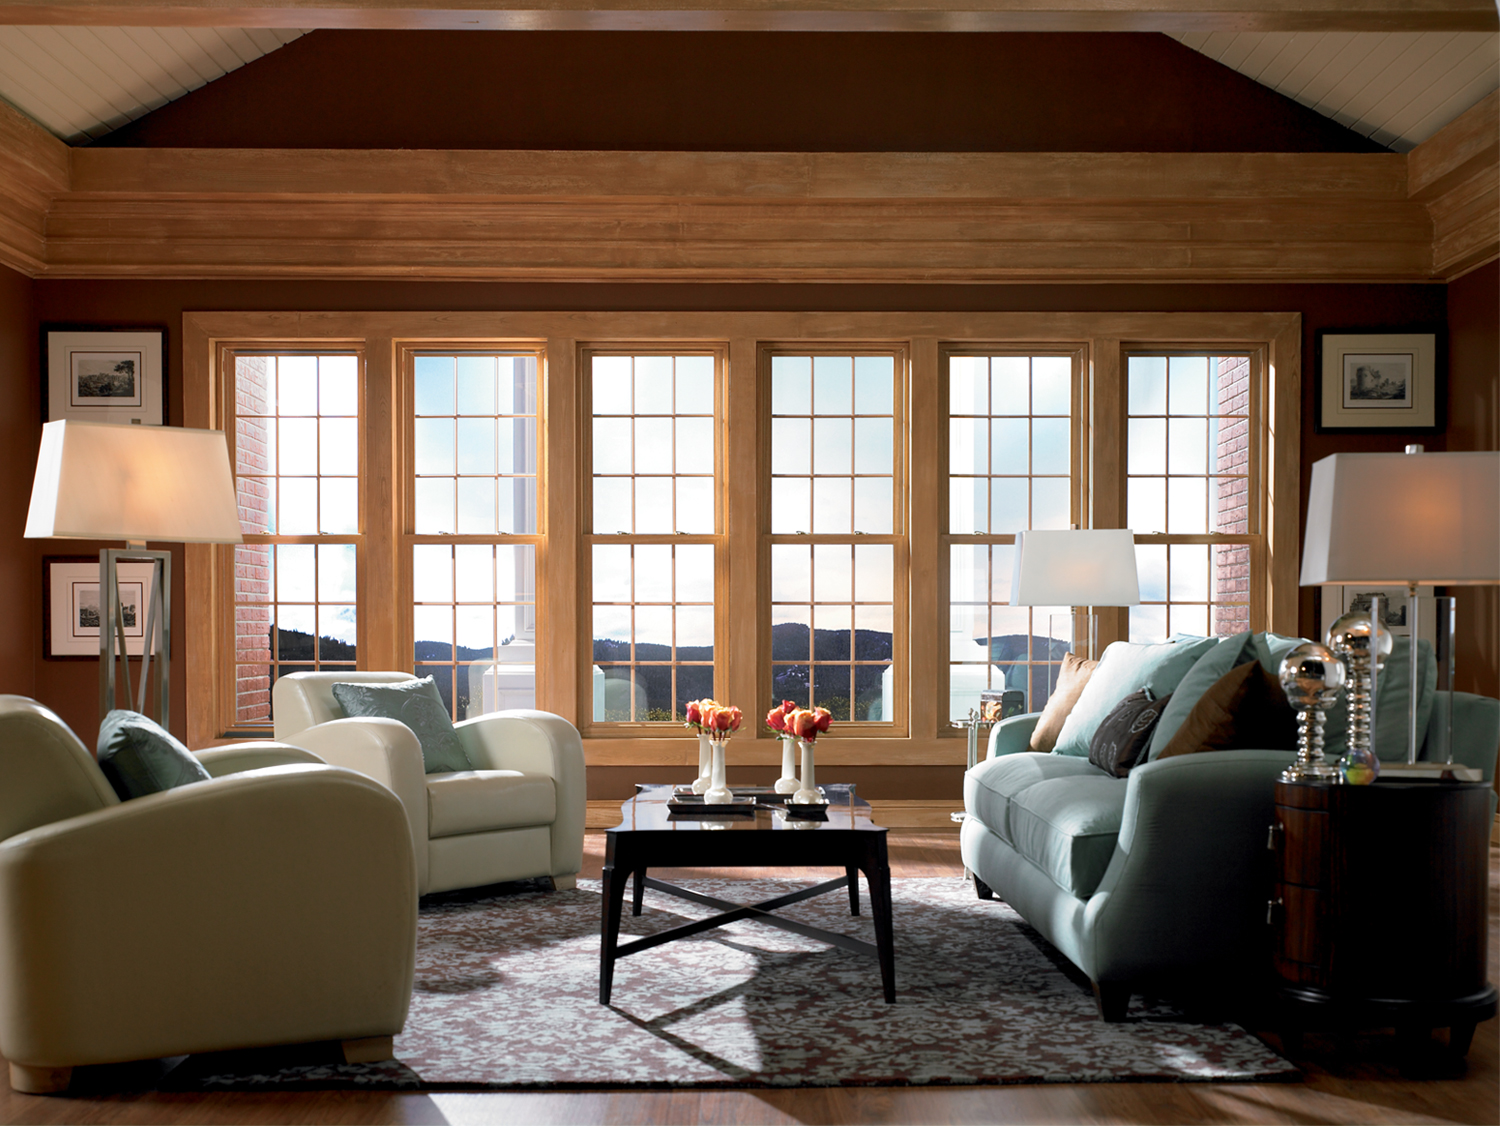 Interior wood windows - Are They Vinyl Or Wood